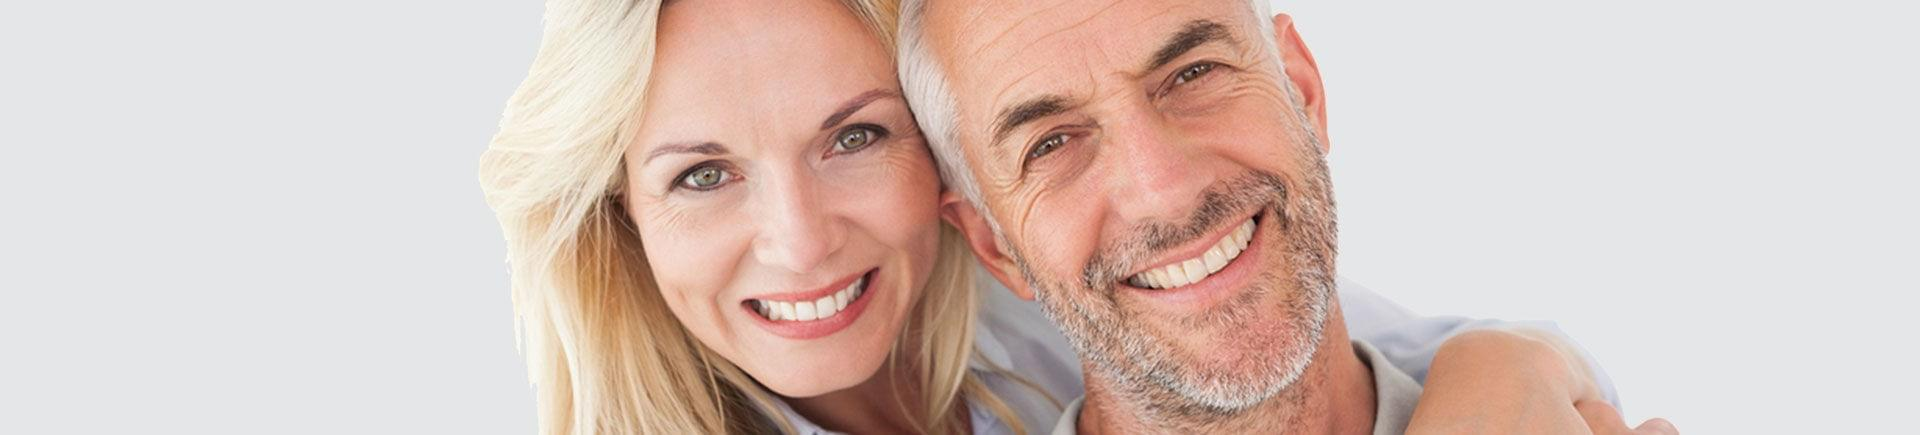 Happy mature couple with perfect smiles.